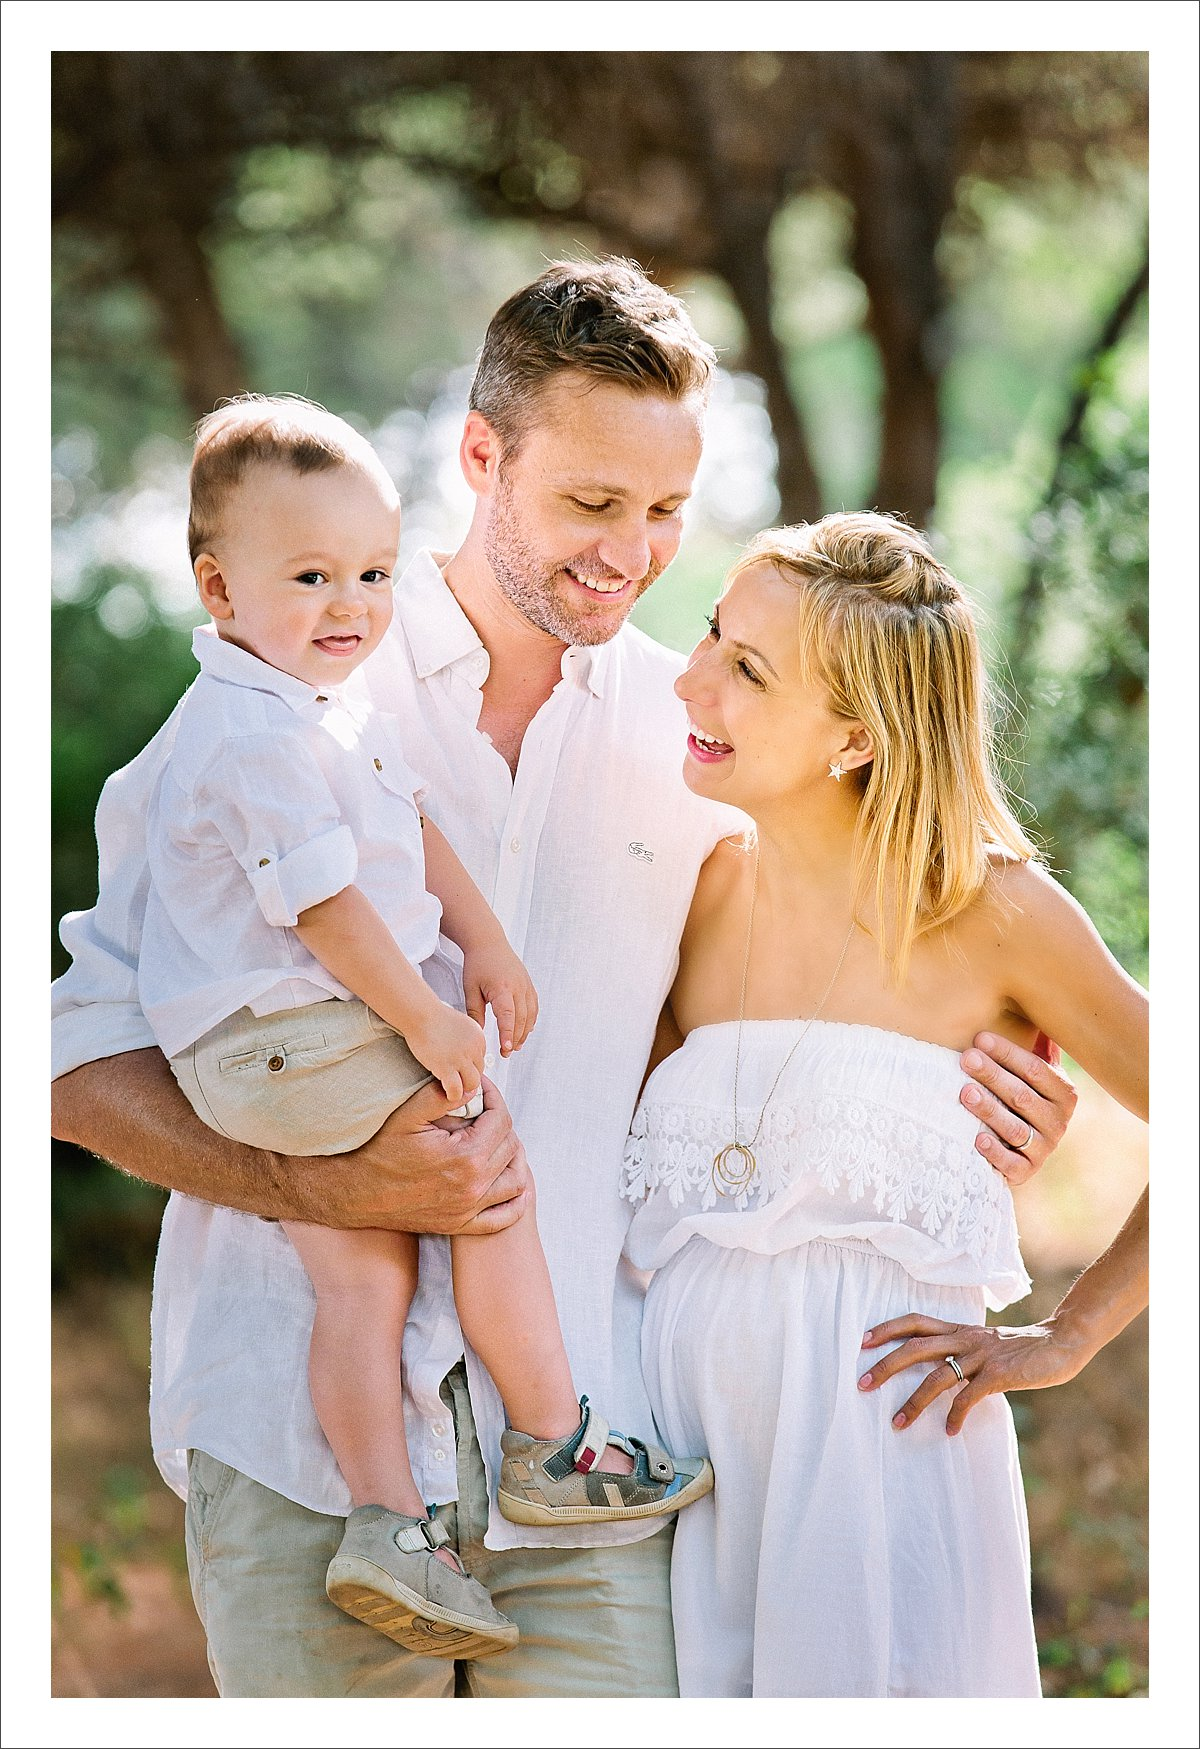 Marbella Maternity and Family photography